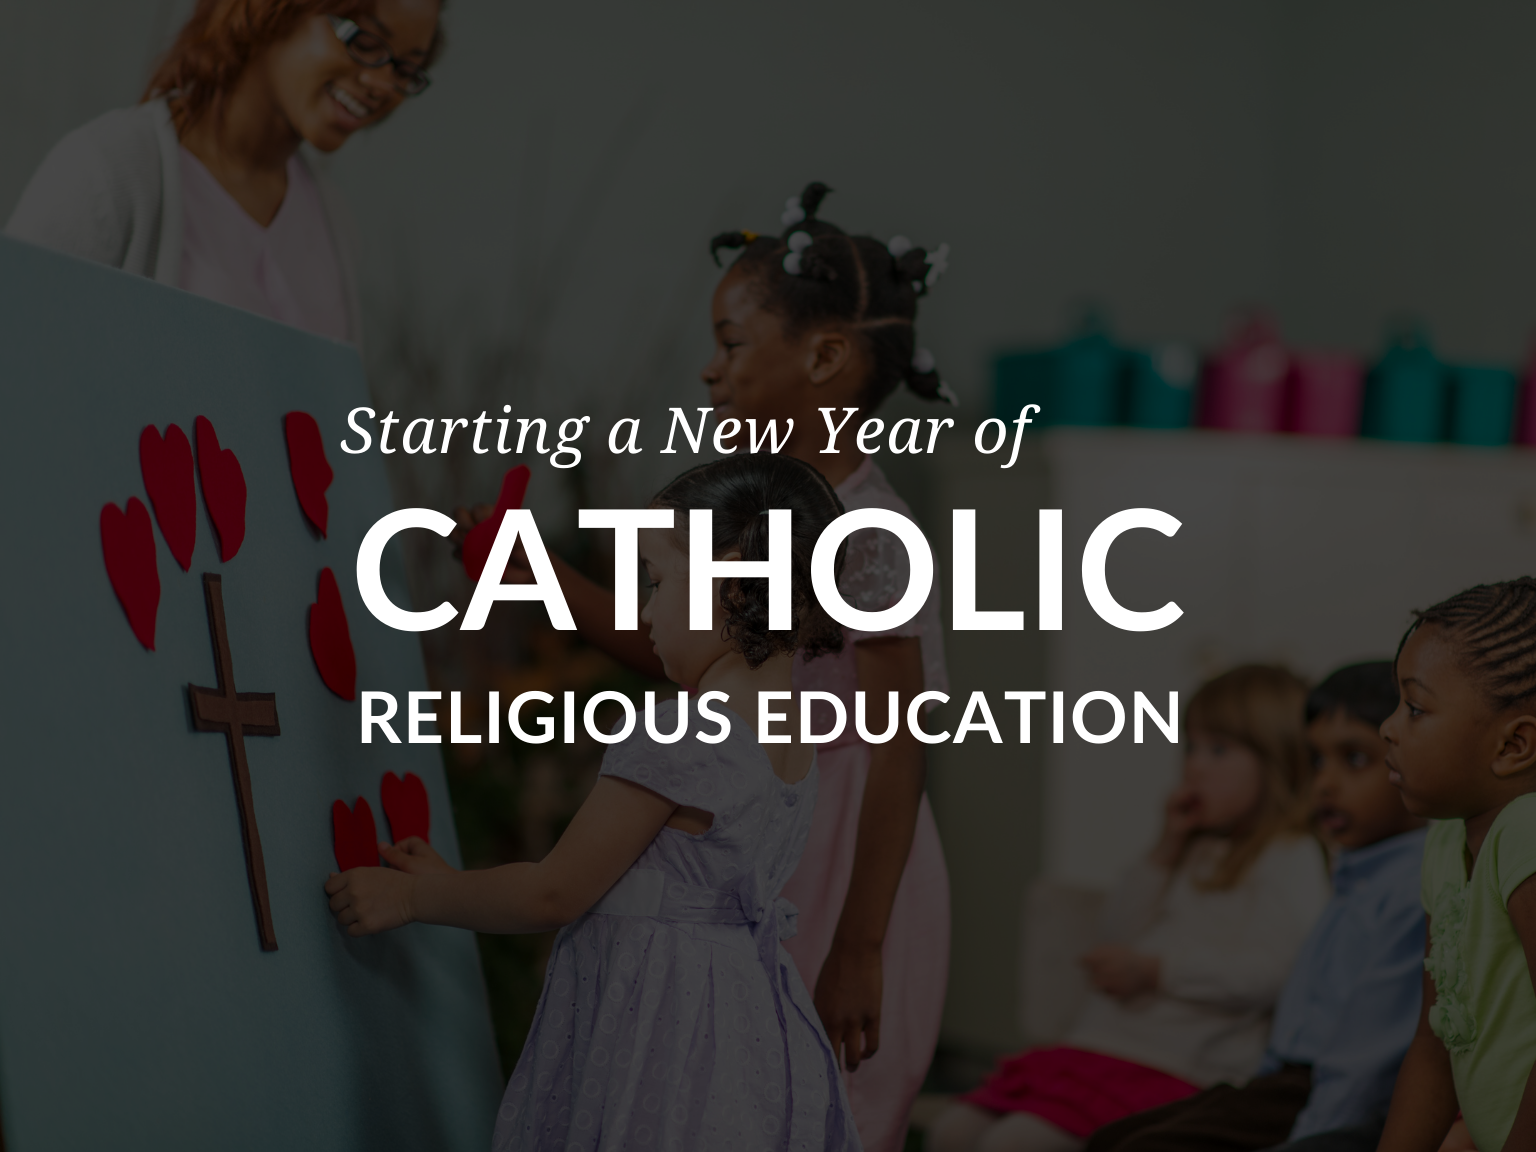 starting-a-new-year-of-catholic-religious-education-prayers-activities